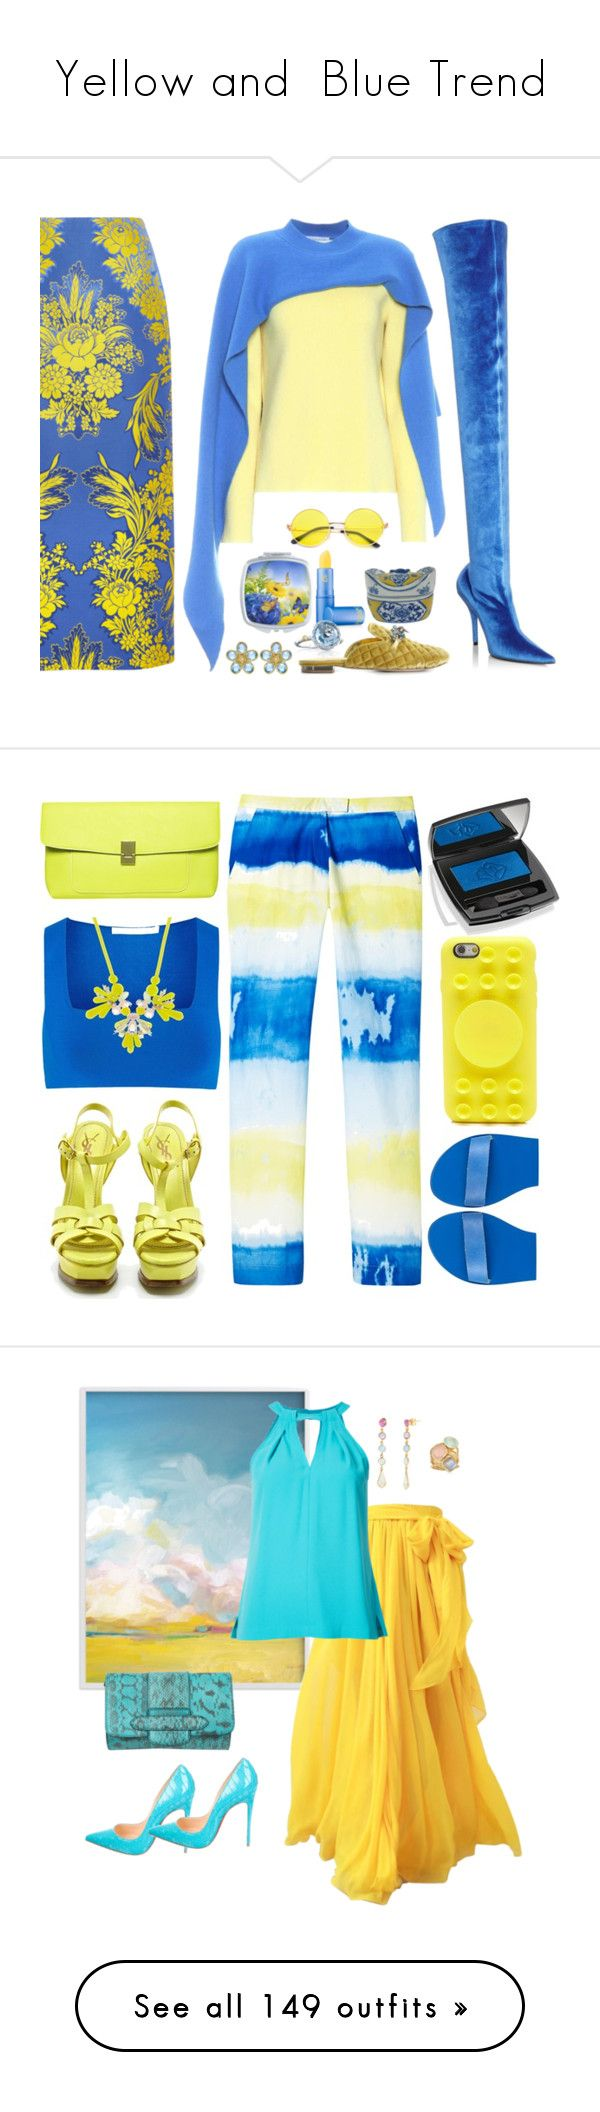 """""""Yellow and  Blue Trend"""" by yours-styling-best-friend ❤ liked on Polyvore featuring Lipstick Queen, Robert Clergerie, Balenciaga, J.W. Anderson, Pierre Hardy, Gucci, Le Silla, Tacori, Yves Saint Laurent and Dorothy Perkins"""